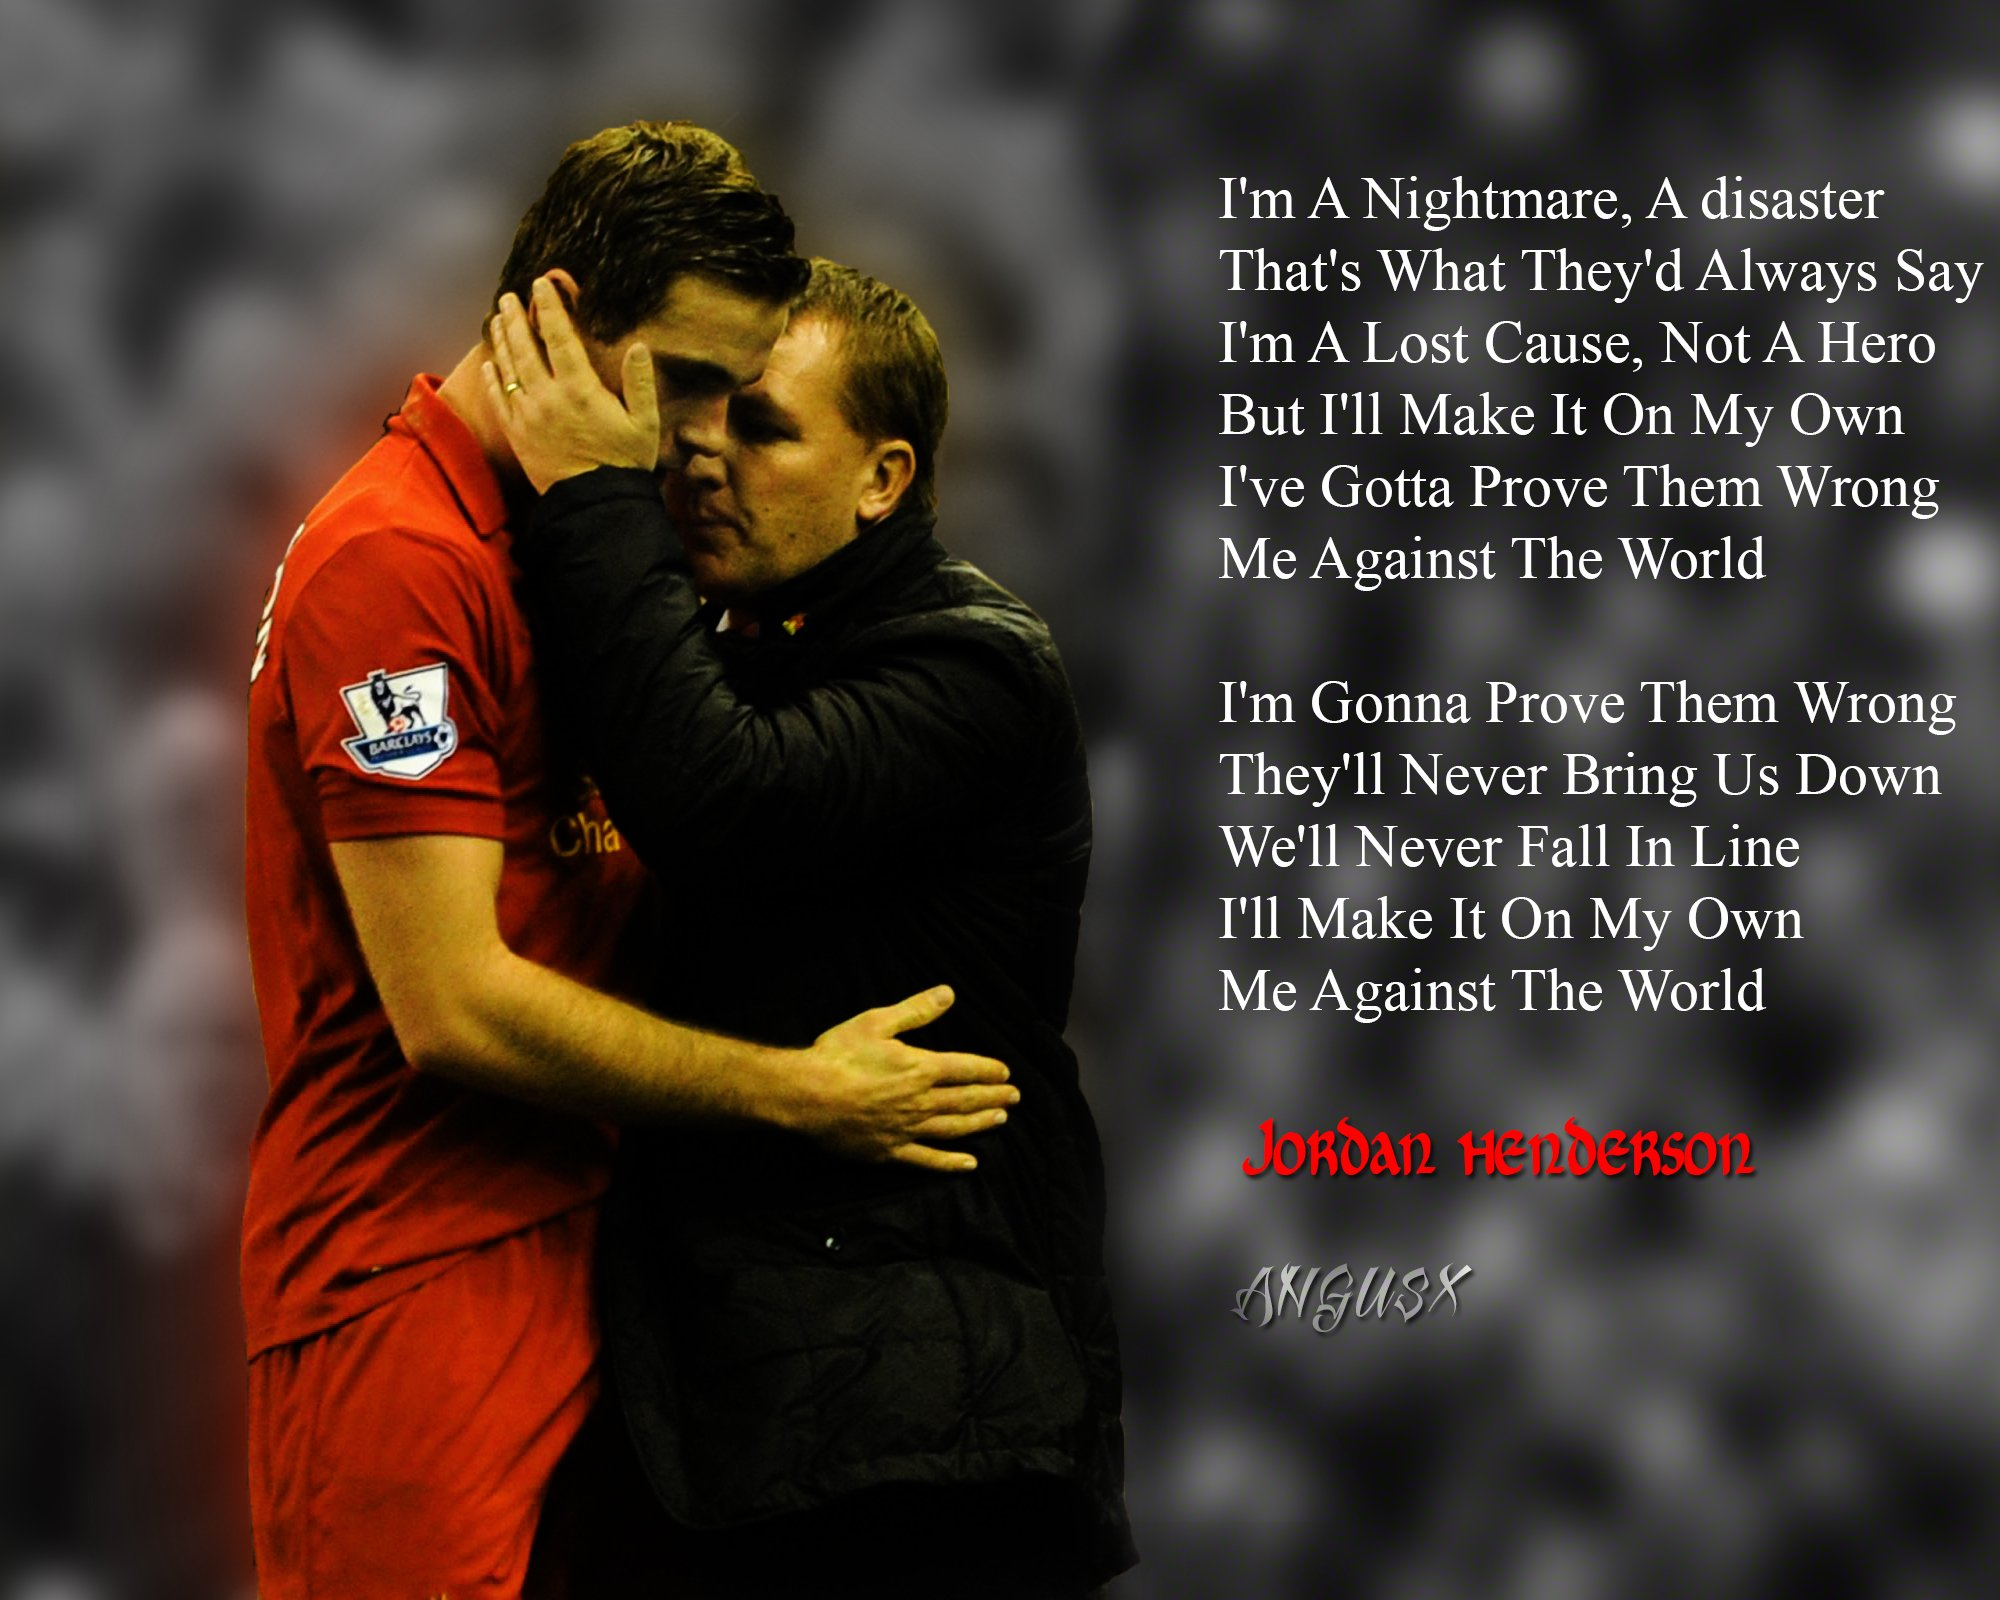 Jordan Henderson   Against The World by ANGUSXRed on 2000x1600